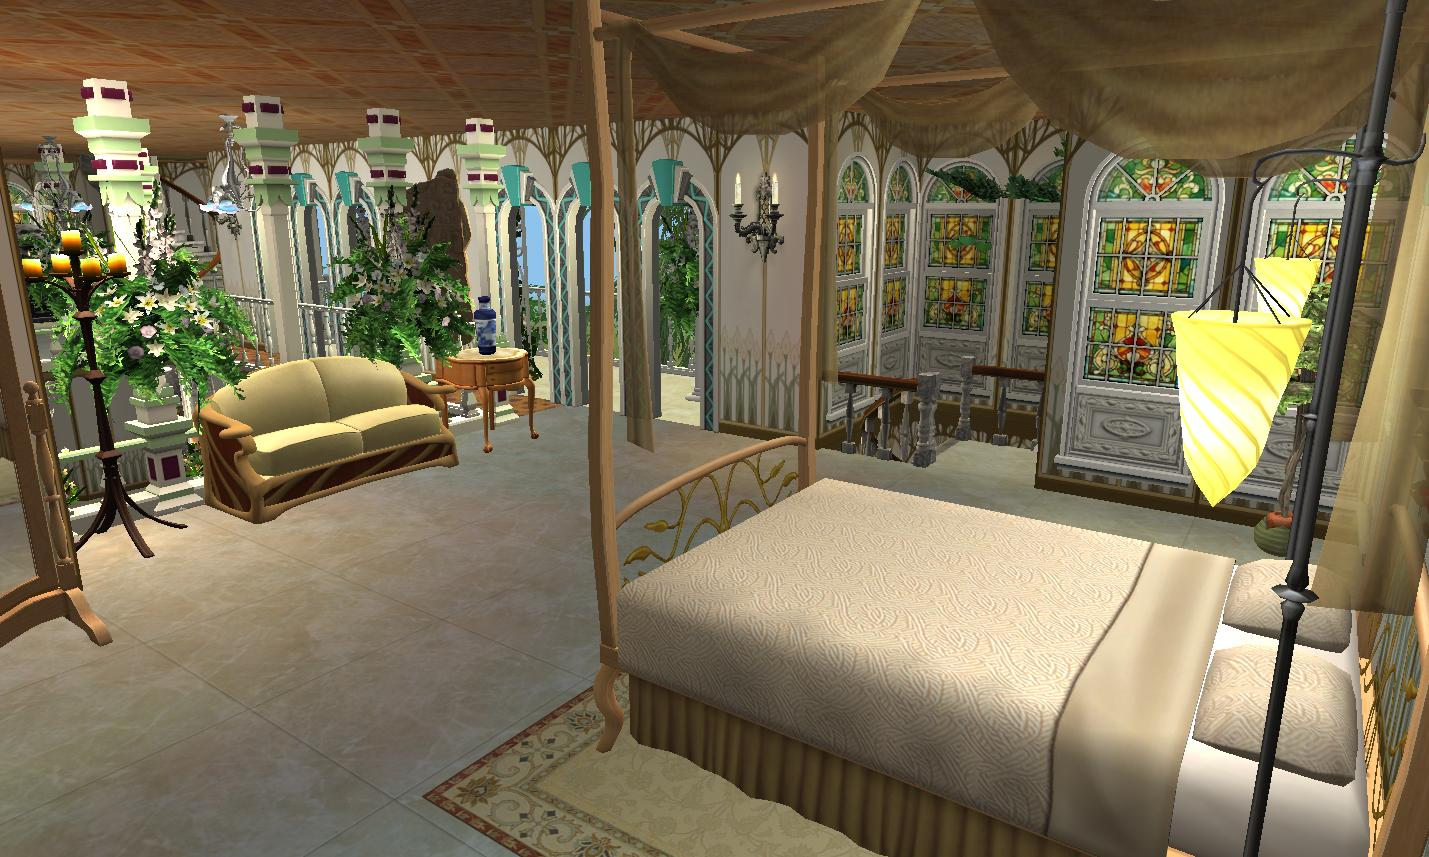 Mod The Sims Rivendell The Last Homely House East Of The Sea No Cc